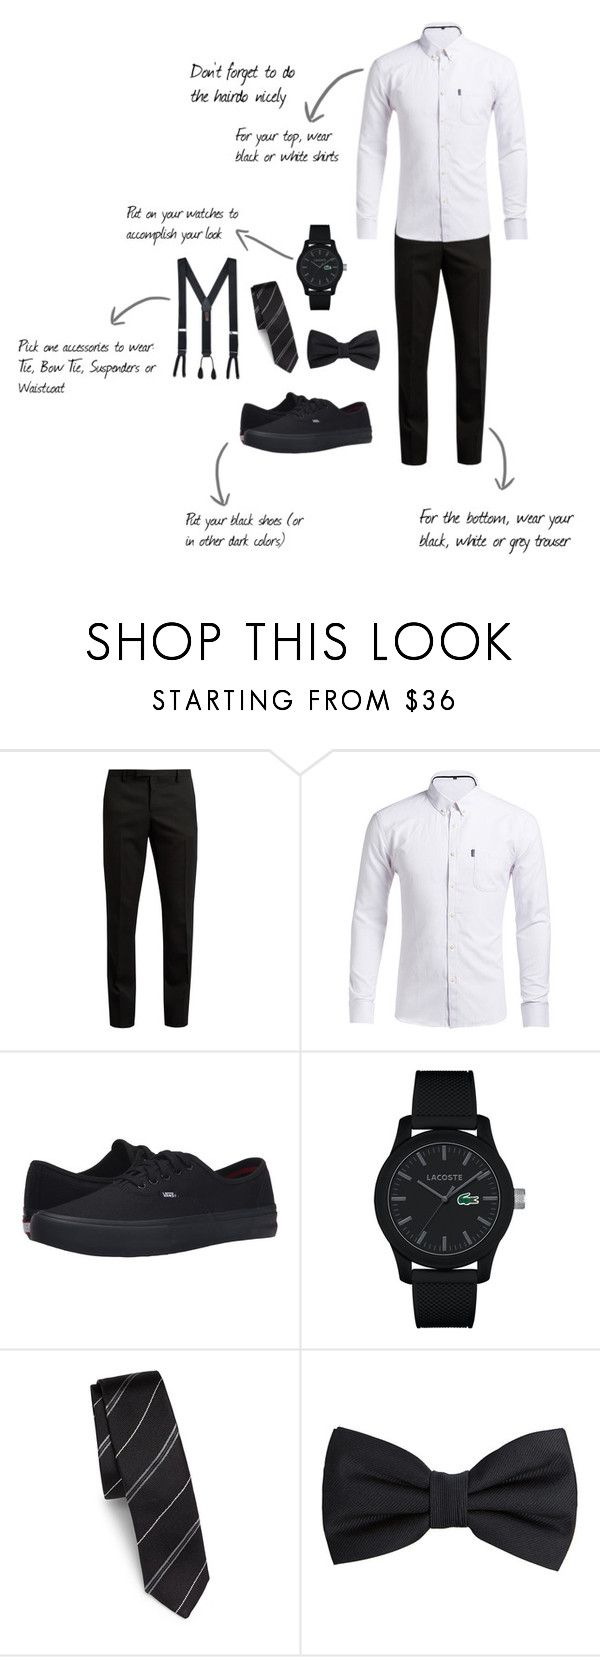 """Attire Guide Monochrome"" by krishnantidewi on Polyvore featuring Yves Saint Laurent, Vans, Lacoste, Dolce&Gabbana, MANGO MAN, Trafalgar, men's fashion and menswear"